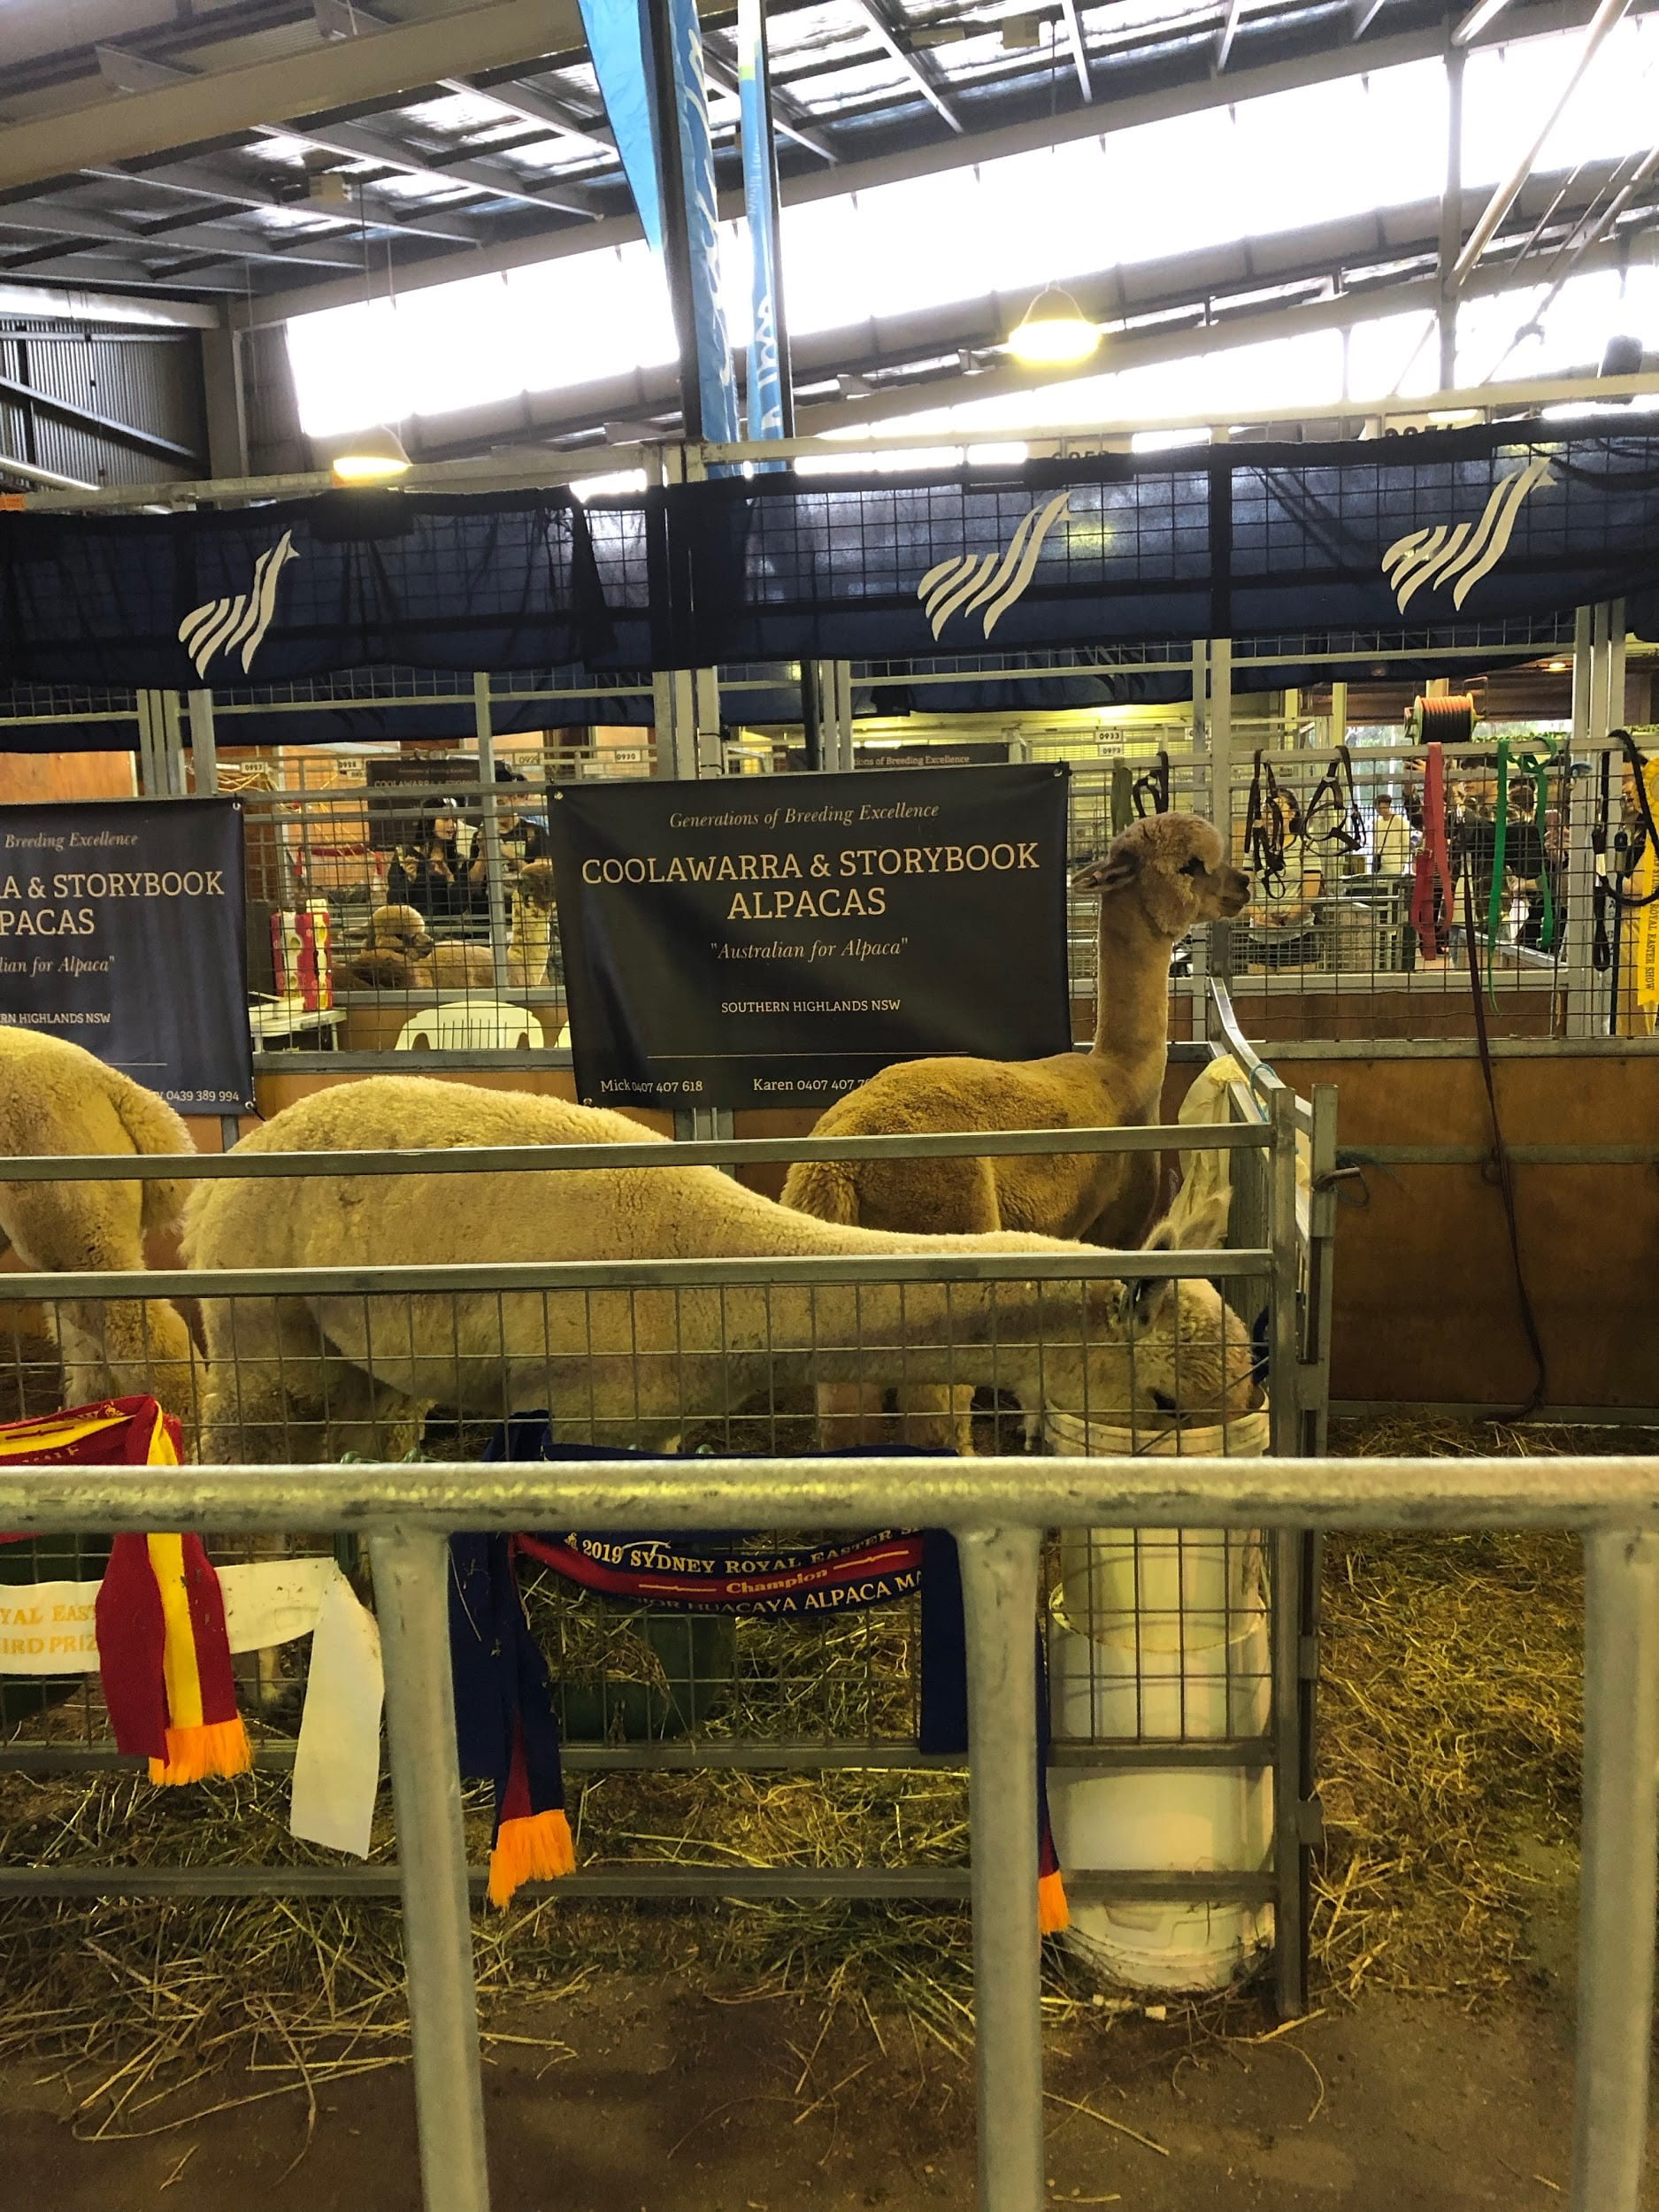 Alpacas behind fence in exhibition hall